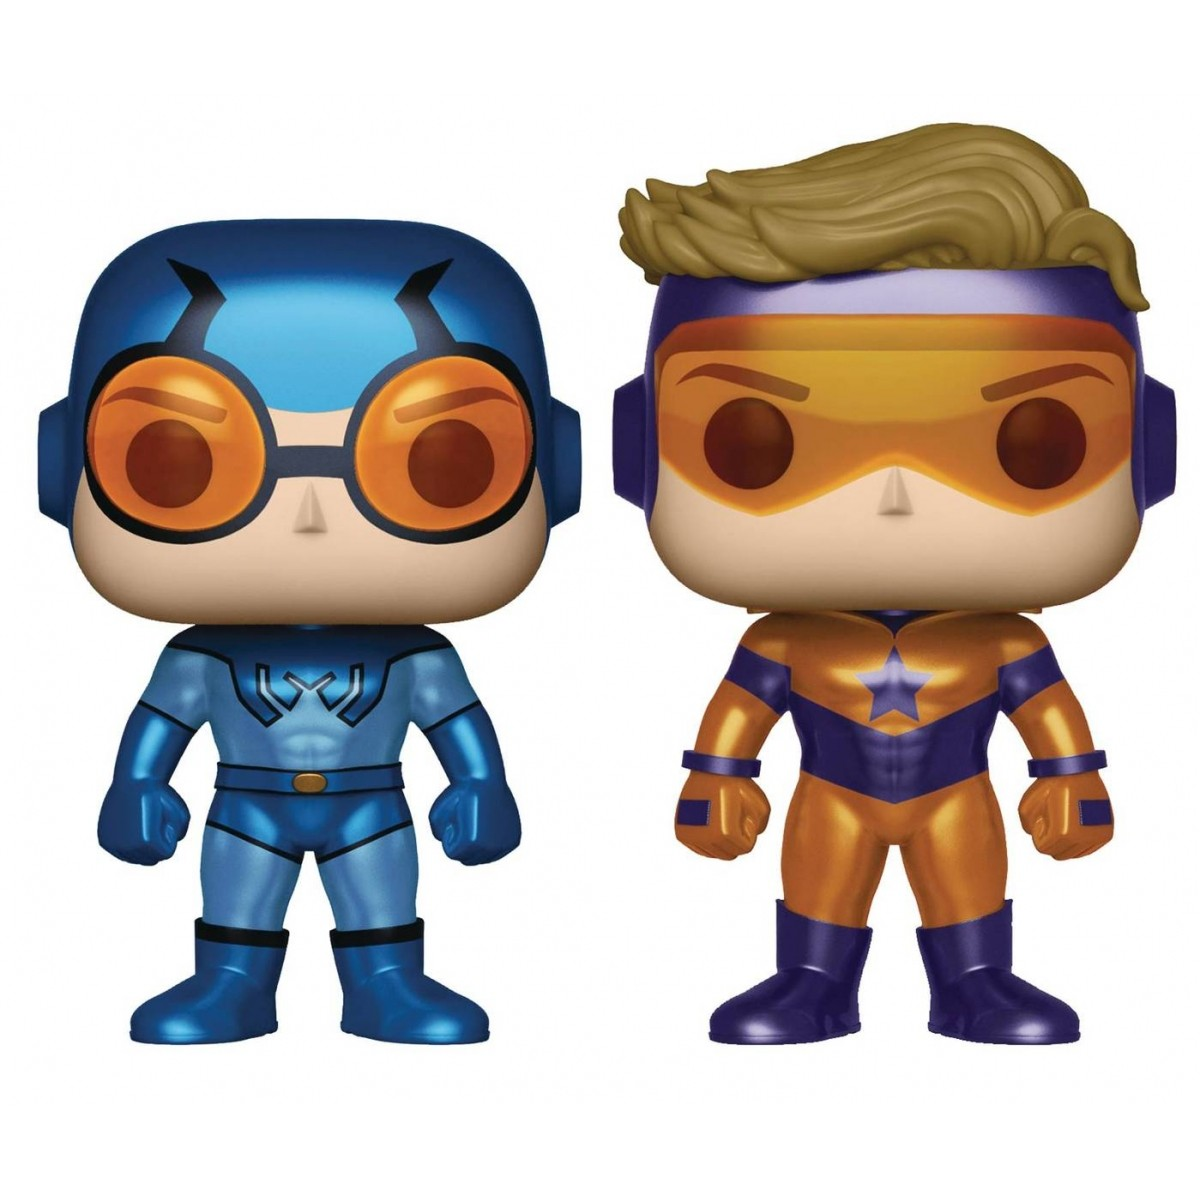 PRÉ VENDA: Pack Pop Booster Gold & Blue Beetle Metálico PX Previews Exclusive (Set de 2) - Funko